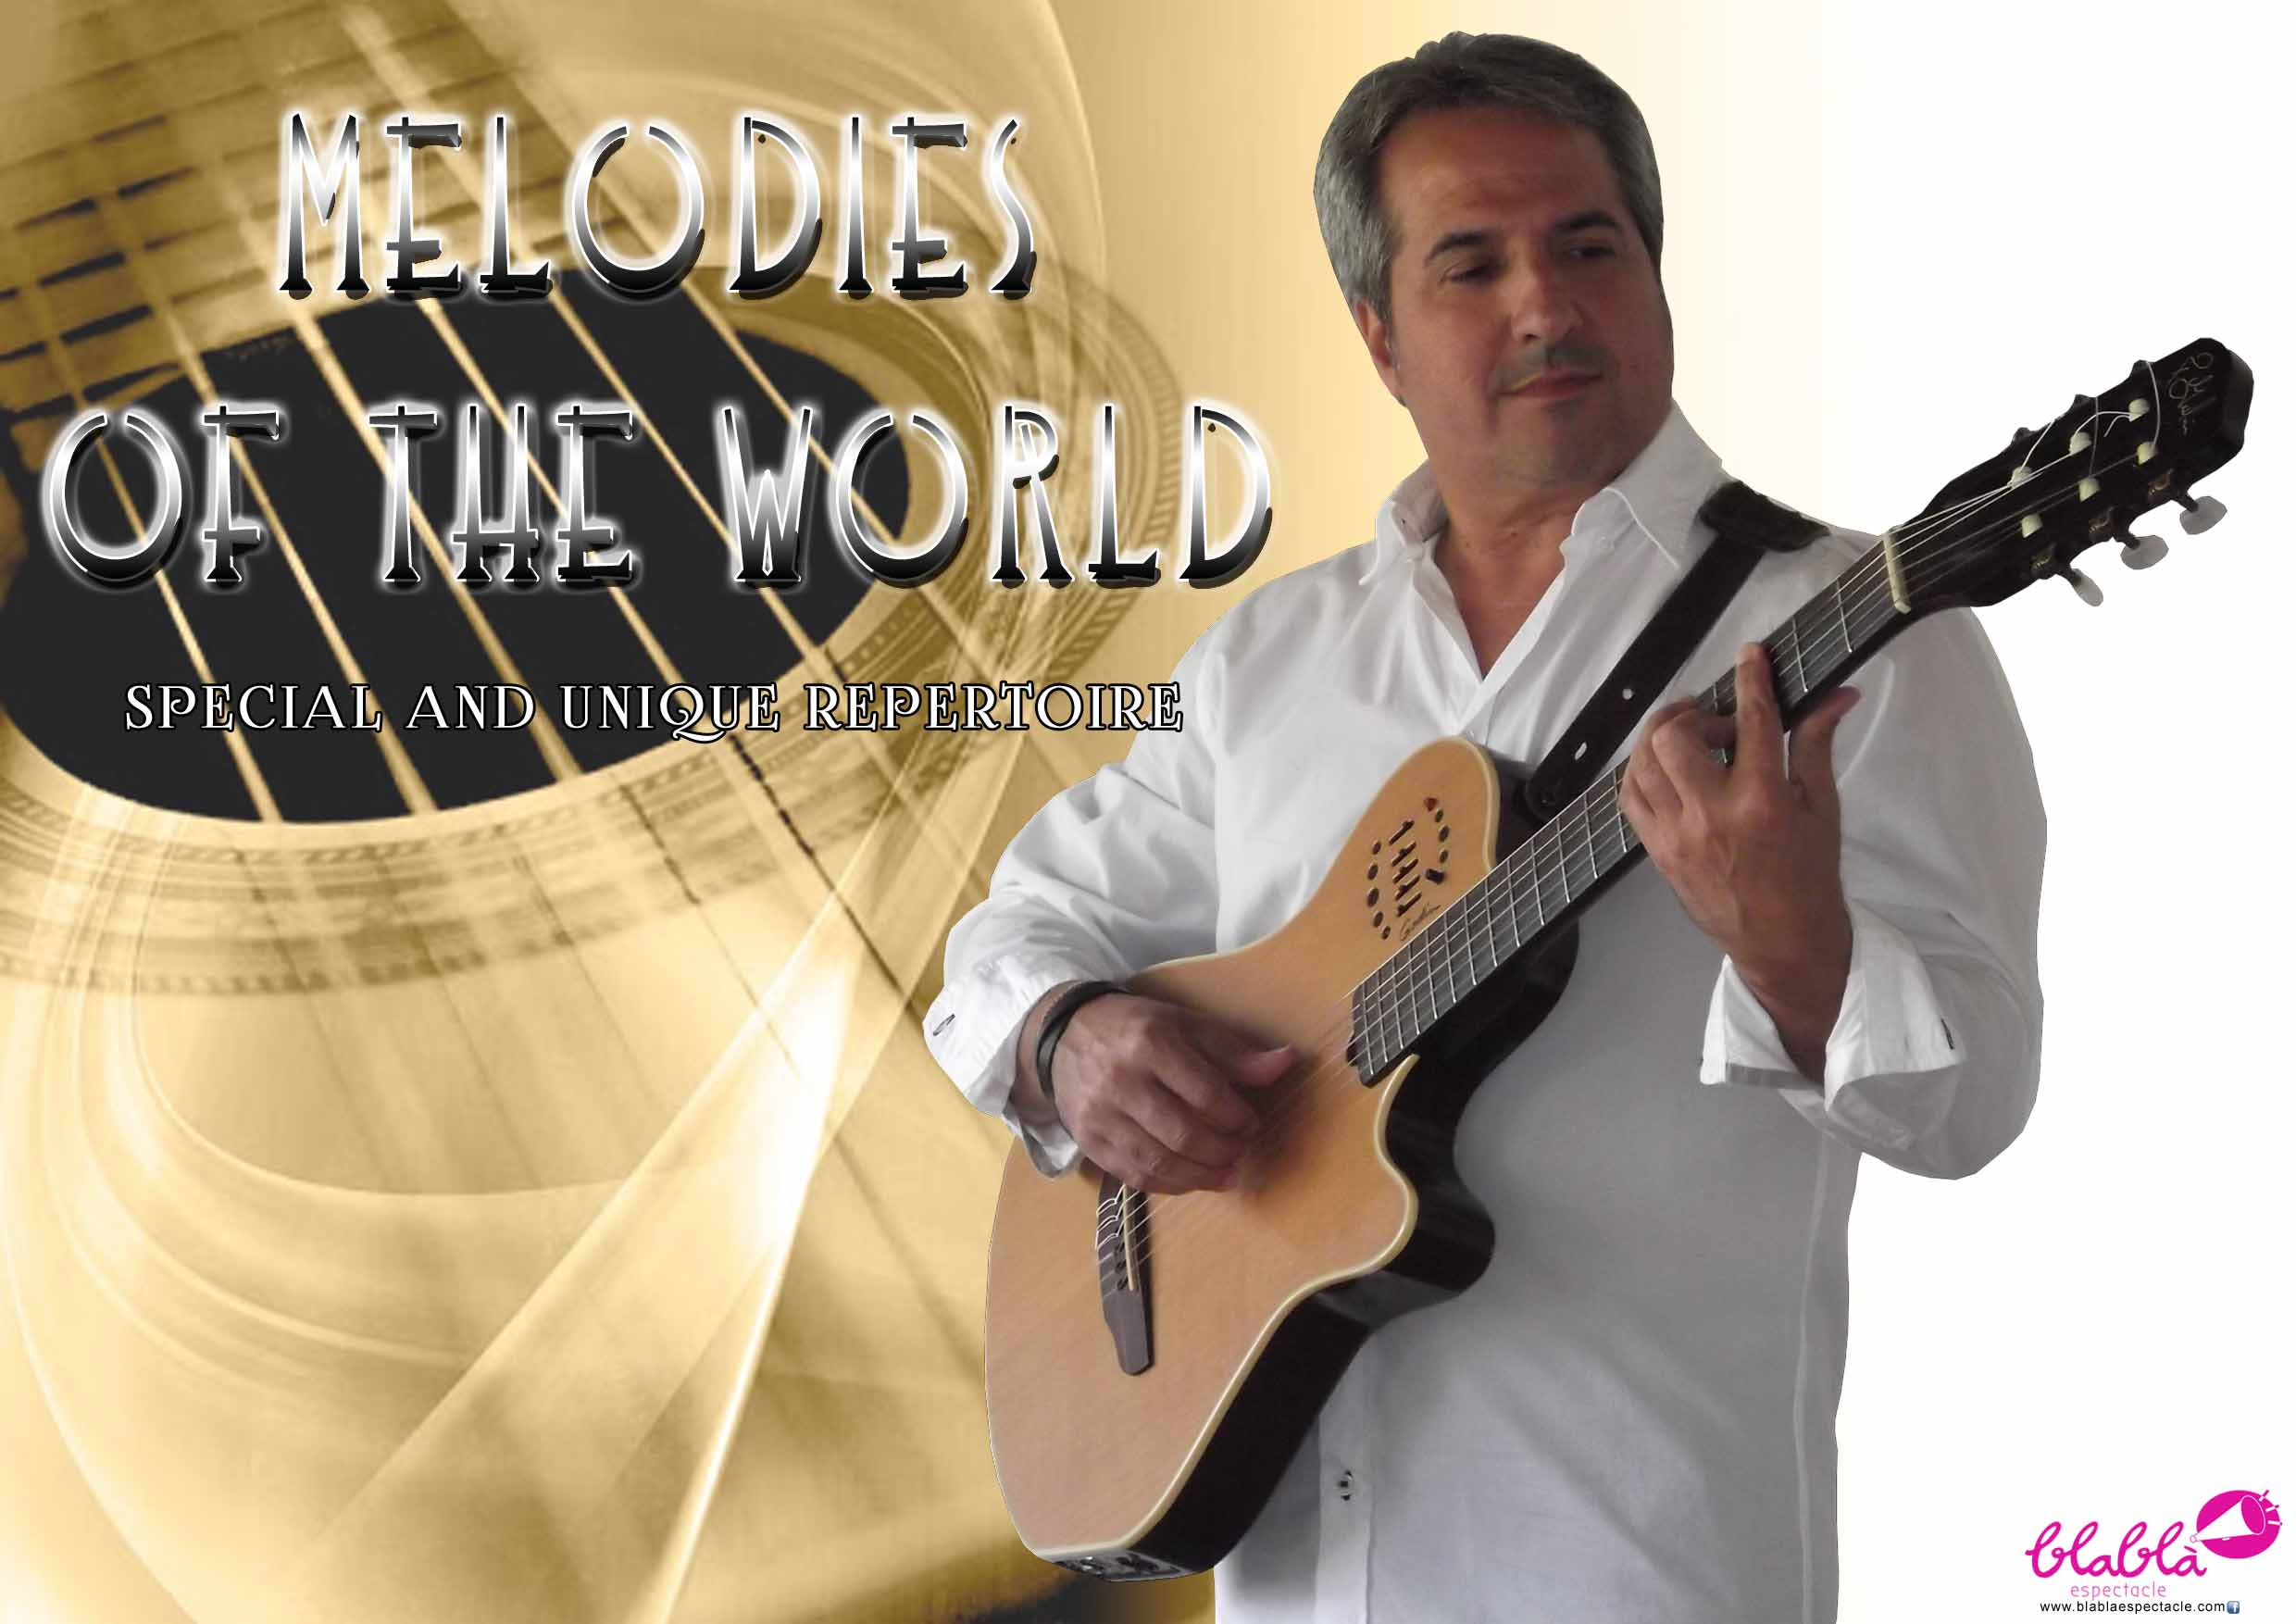 Melodies of the World